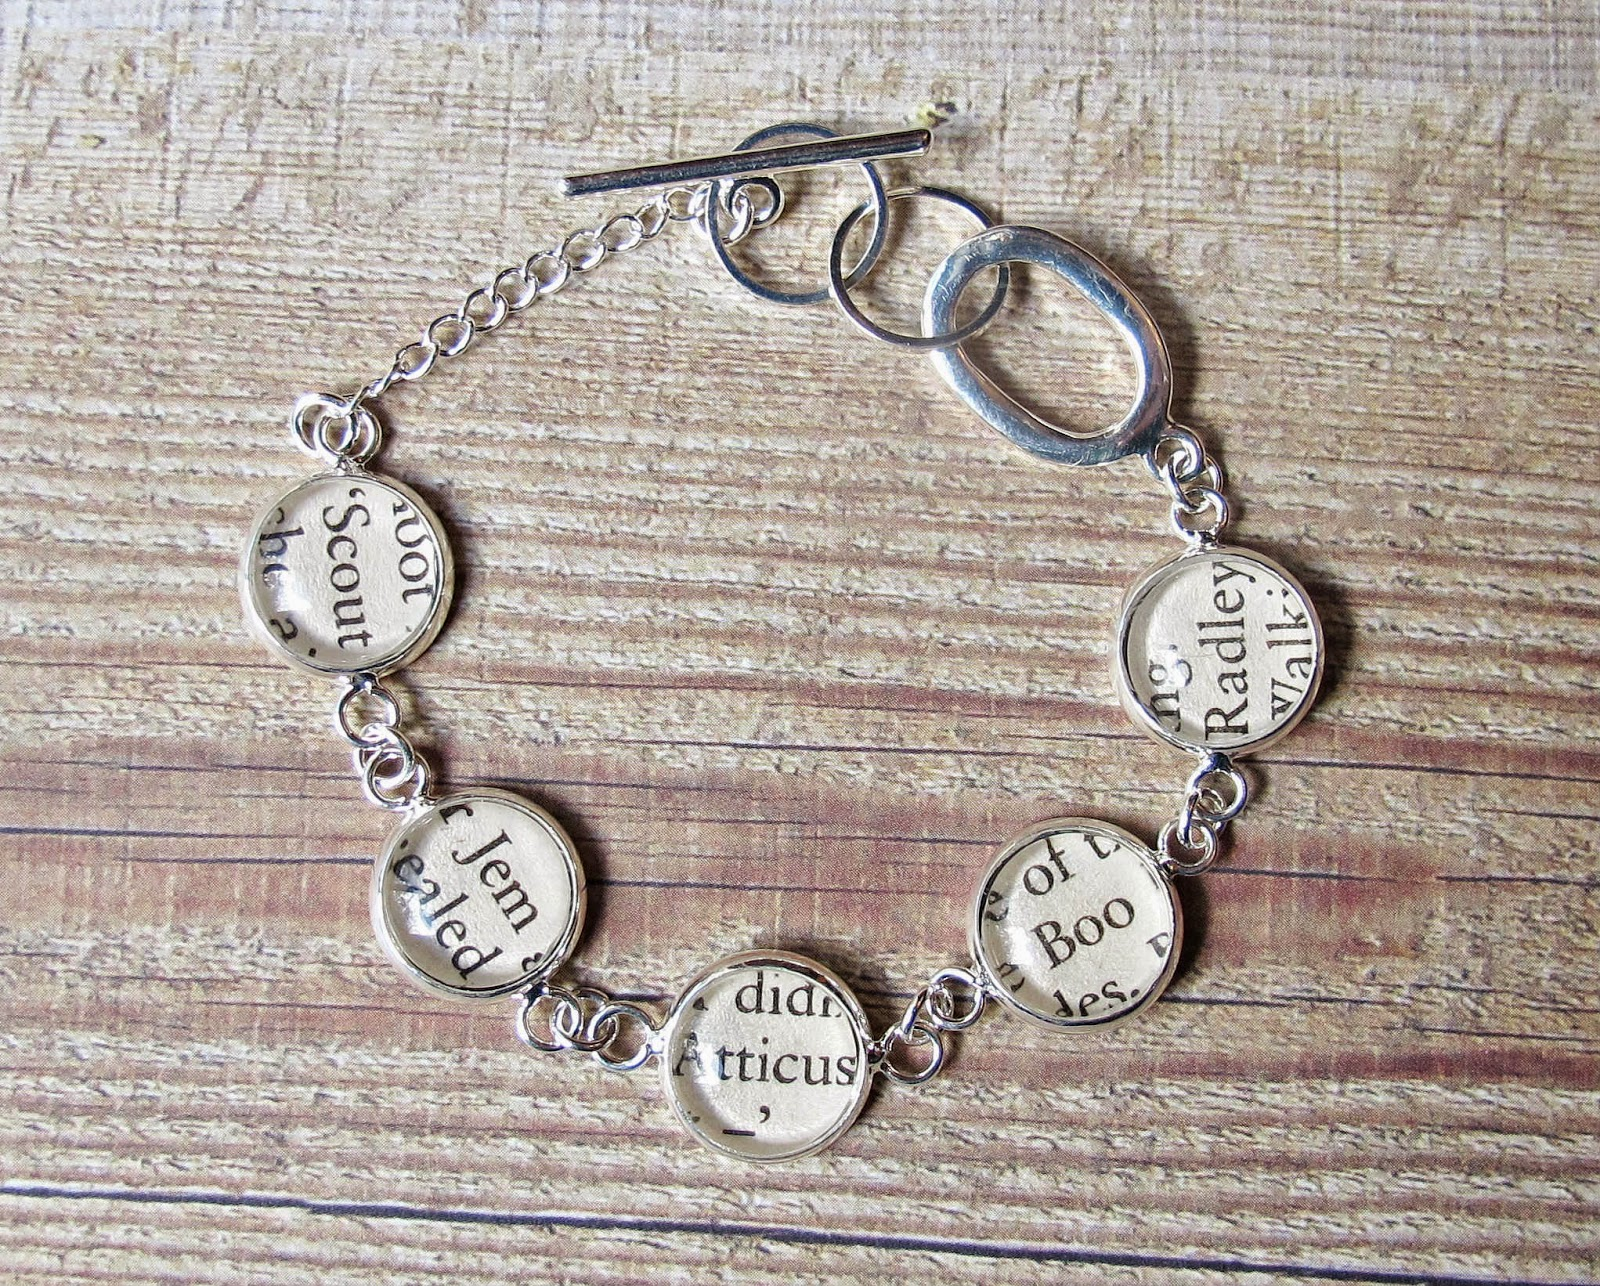 image two cheeky monkeys bracelet literature jewellery jewelry to kill a mockingbird atticus finch boo radley harper lee